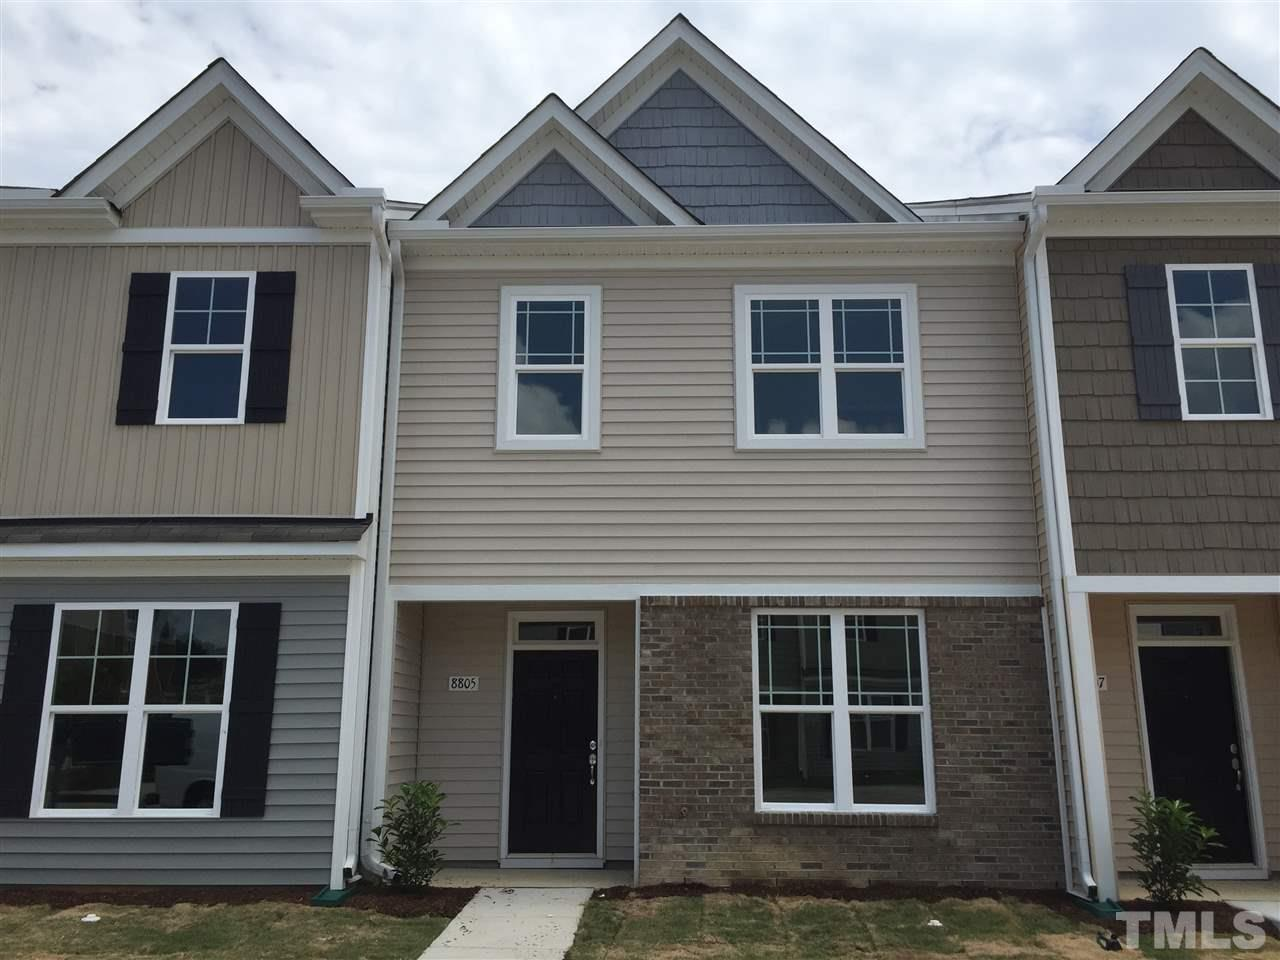 8805 Commons Townes Drive 78, Raleigh, NC 27616